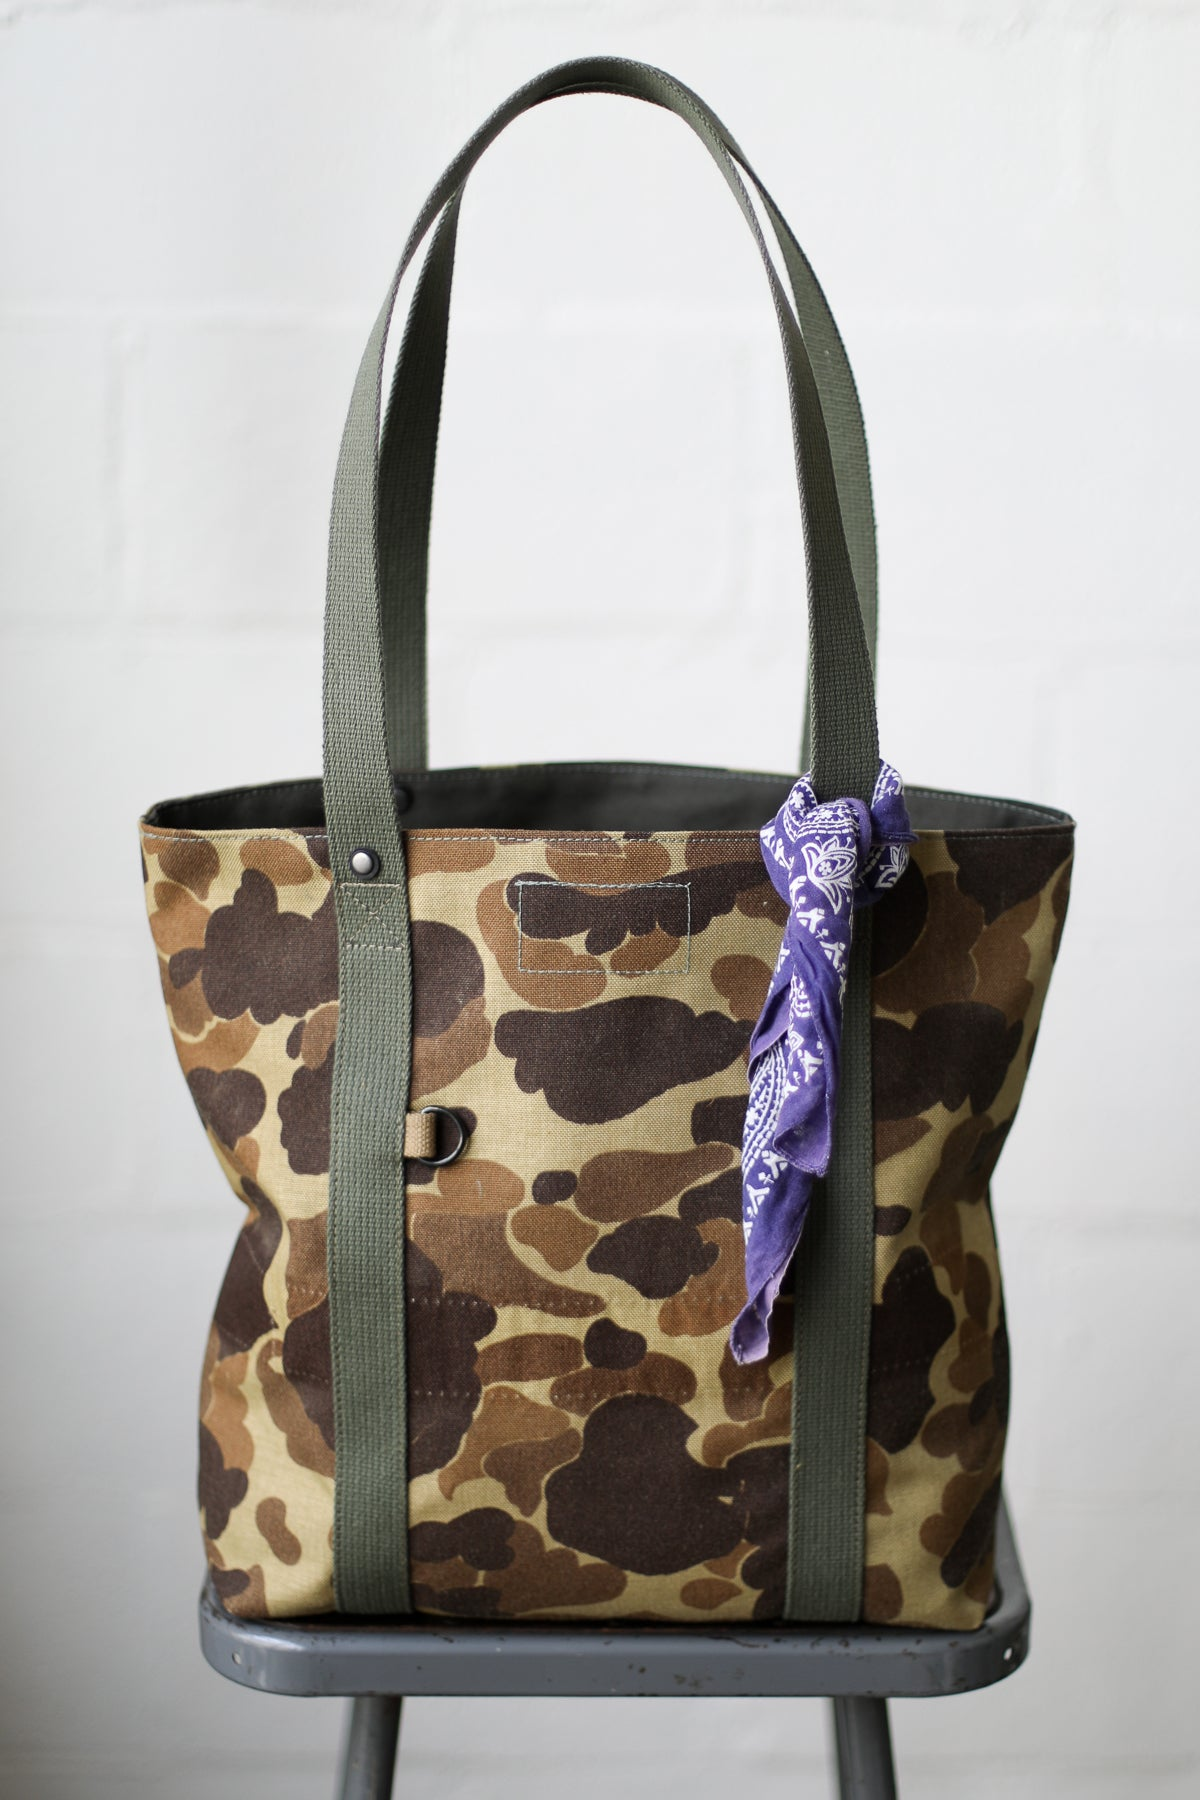 1960's era Salvaged Camo Tote Bag